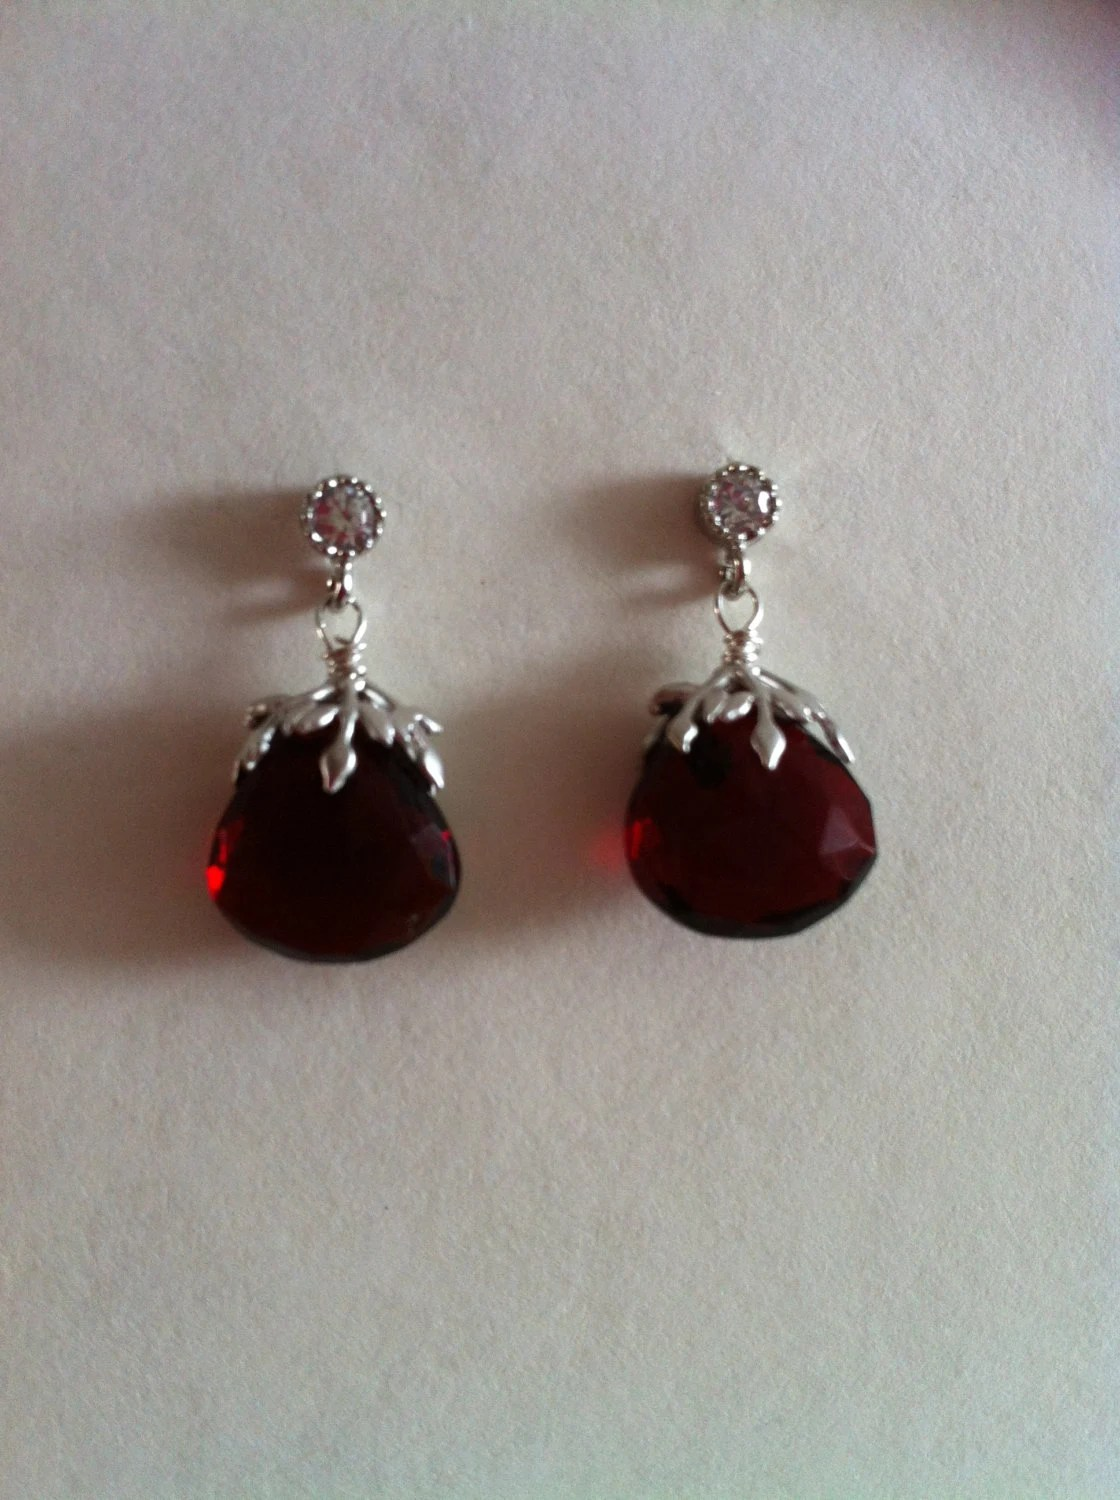 SALES - Faceted Red Quartz Dangle Earrings with Cubic Zirconia Ear Stud, Bridal Earrings, Gift, Christmas Gift - RainbowKnit